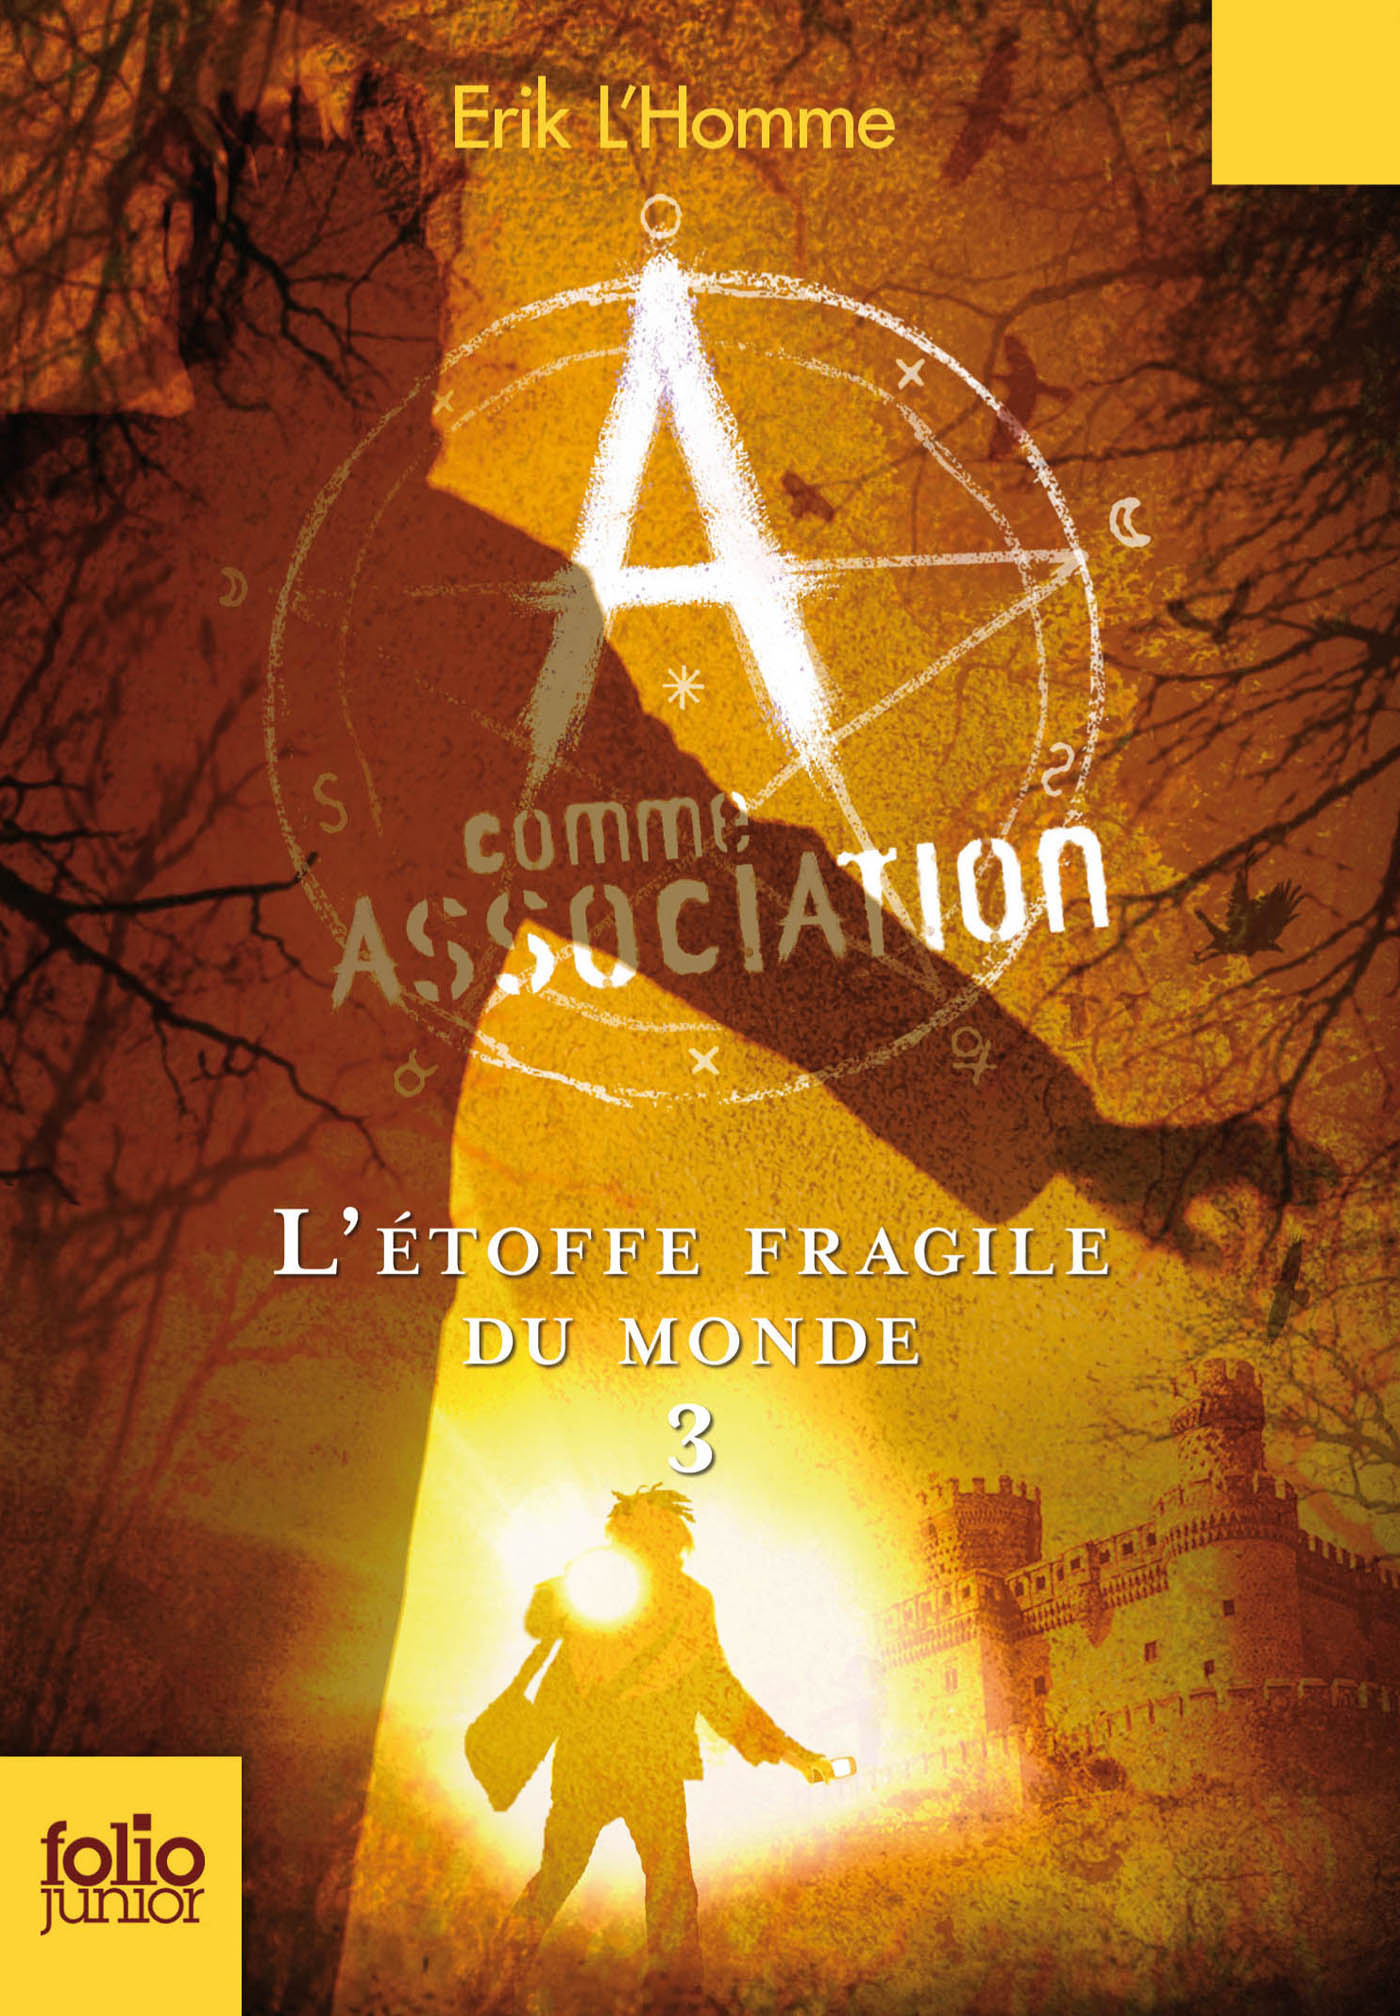 A COMME ASSOCIATION 3 - L'ETOFFE FRAGILE DU MONDE